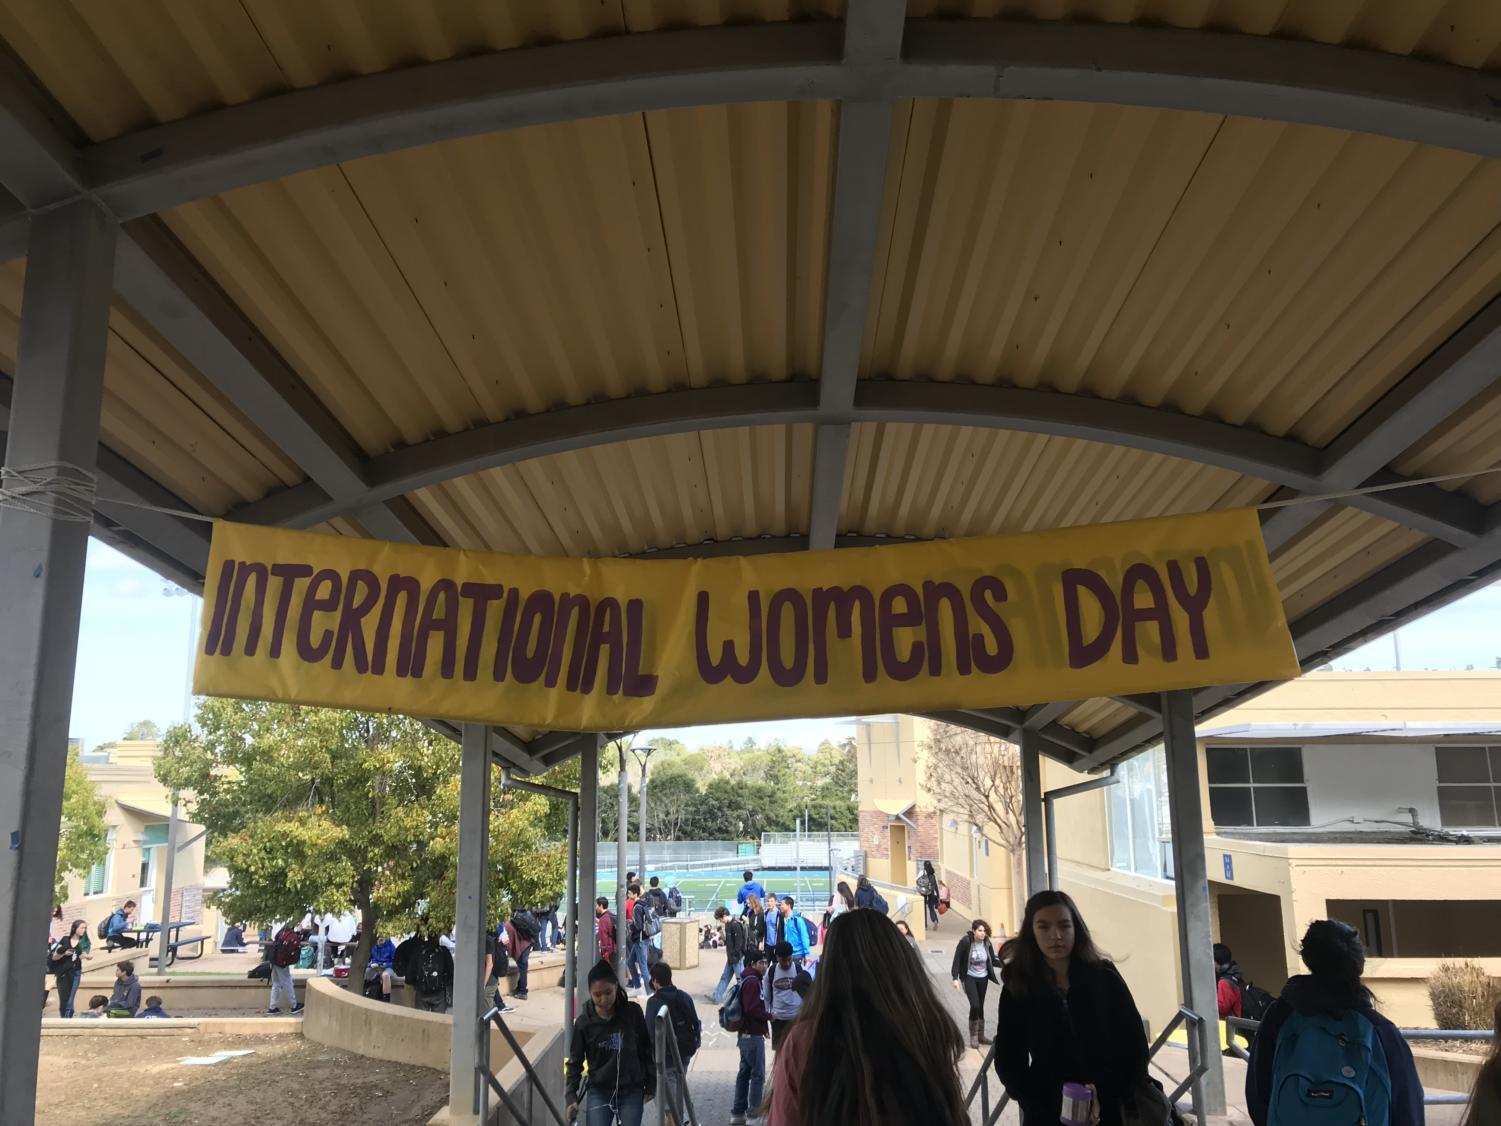 Banners were hung throughout the school to make all students aware of the purpose of the week.